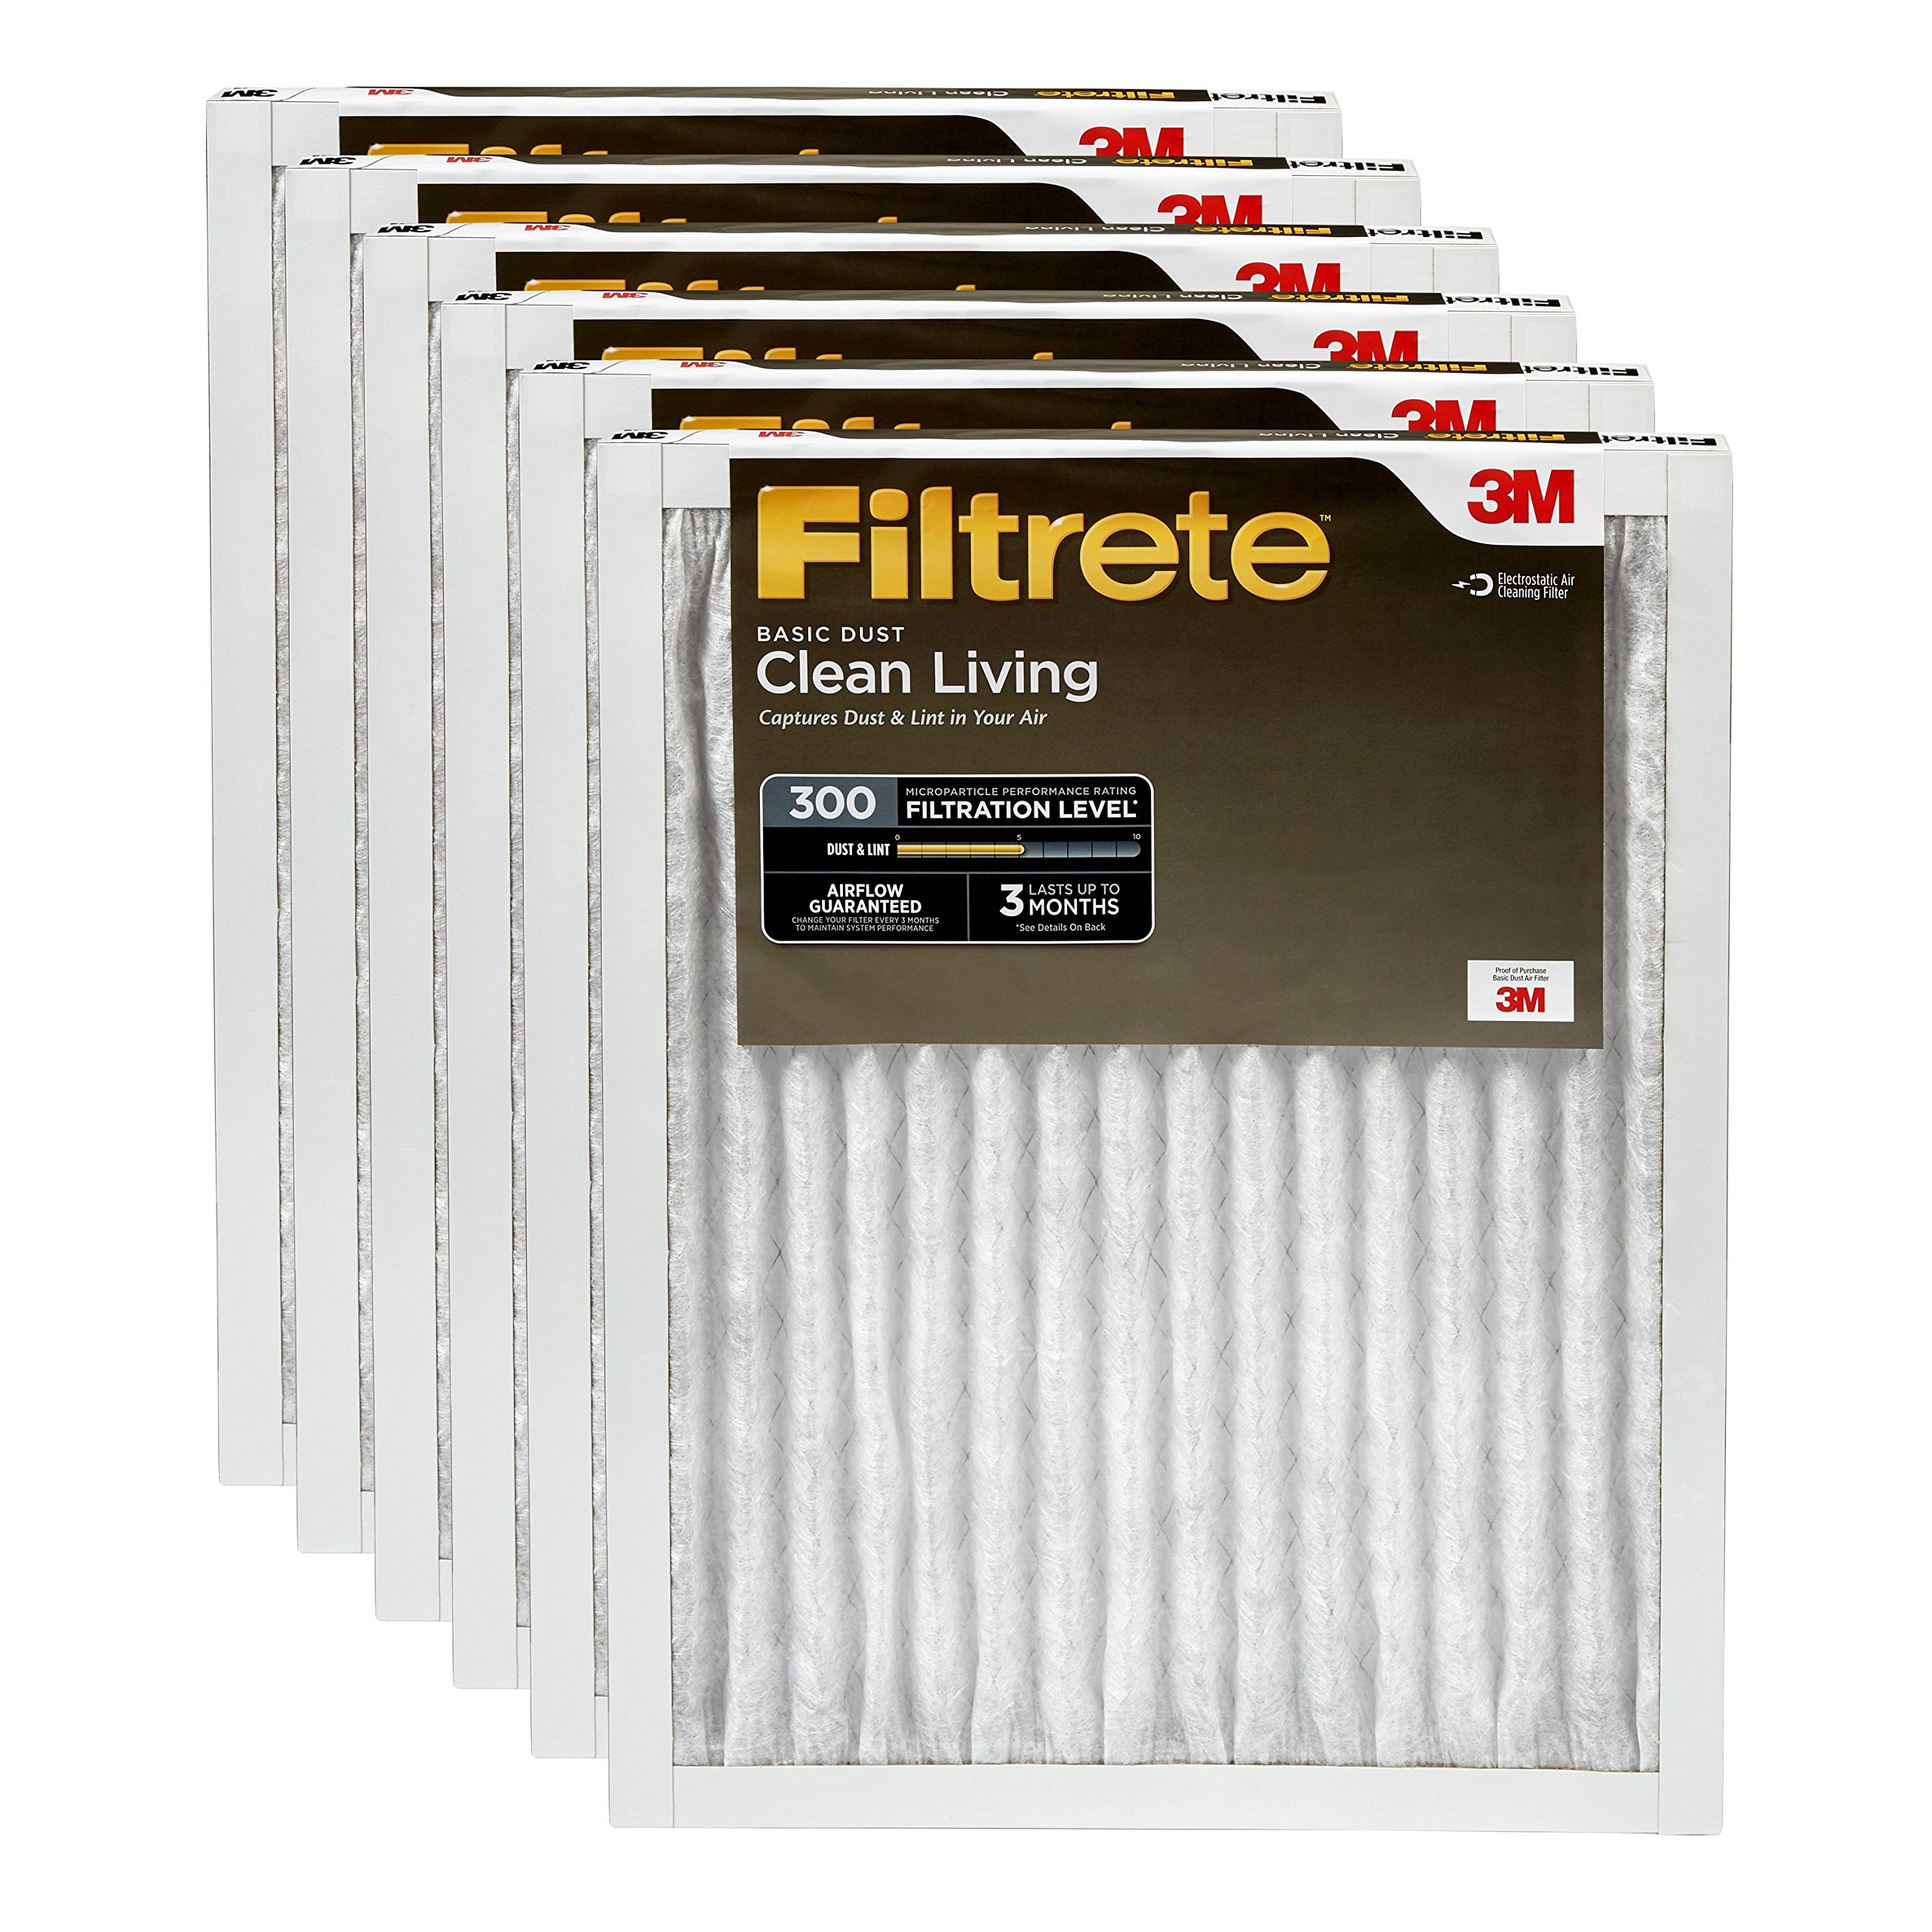 Filtrete 20x20x1, AC Furnace Air Filter, MPR 300, Clean Living Basic Dust, 6-Pack by Filtrete (Image #1)